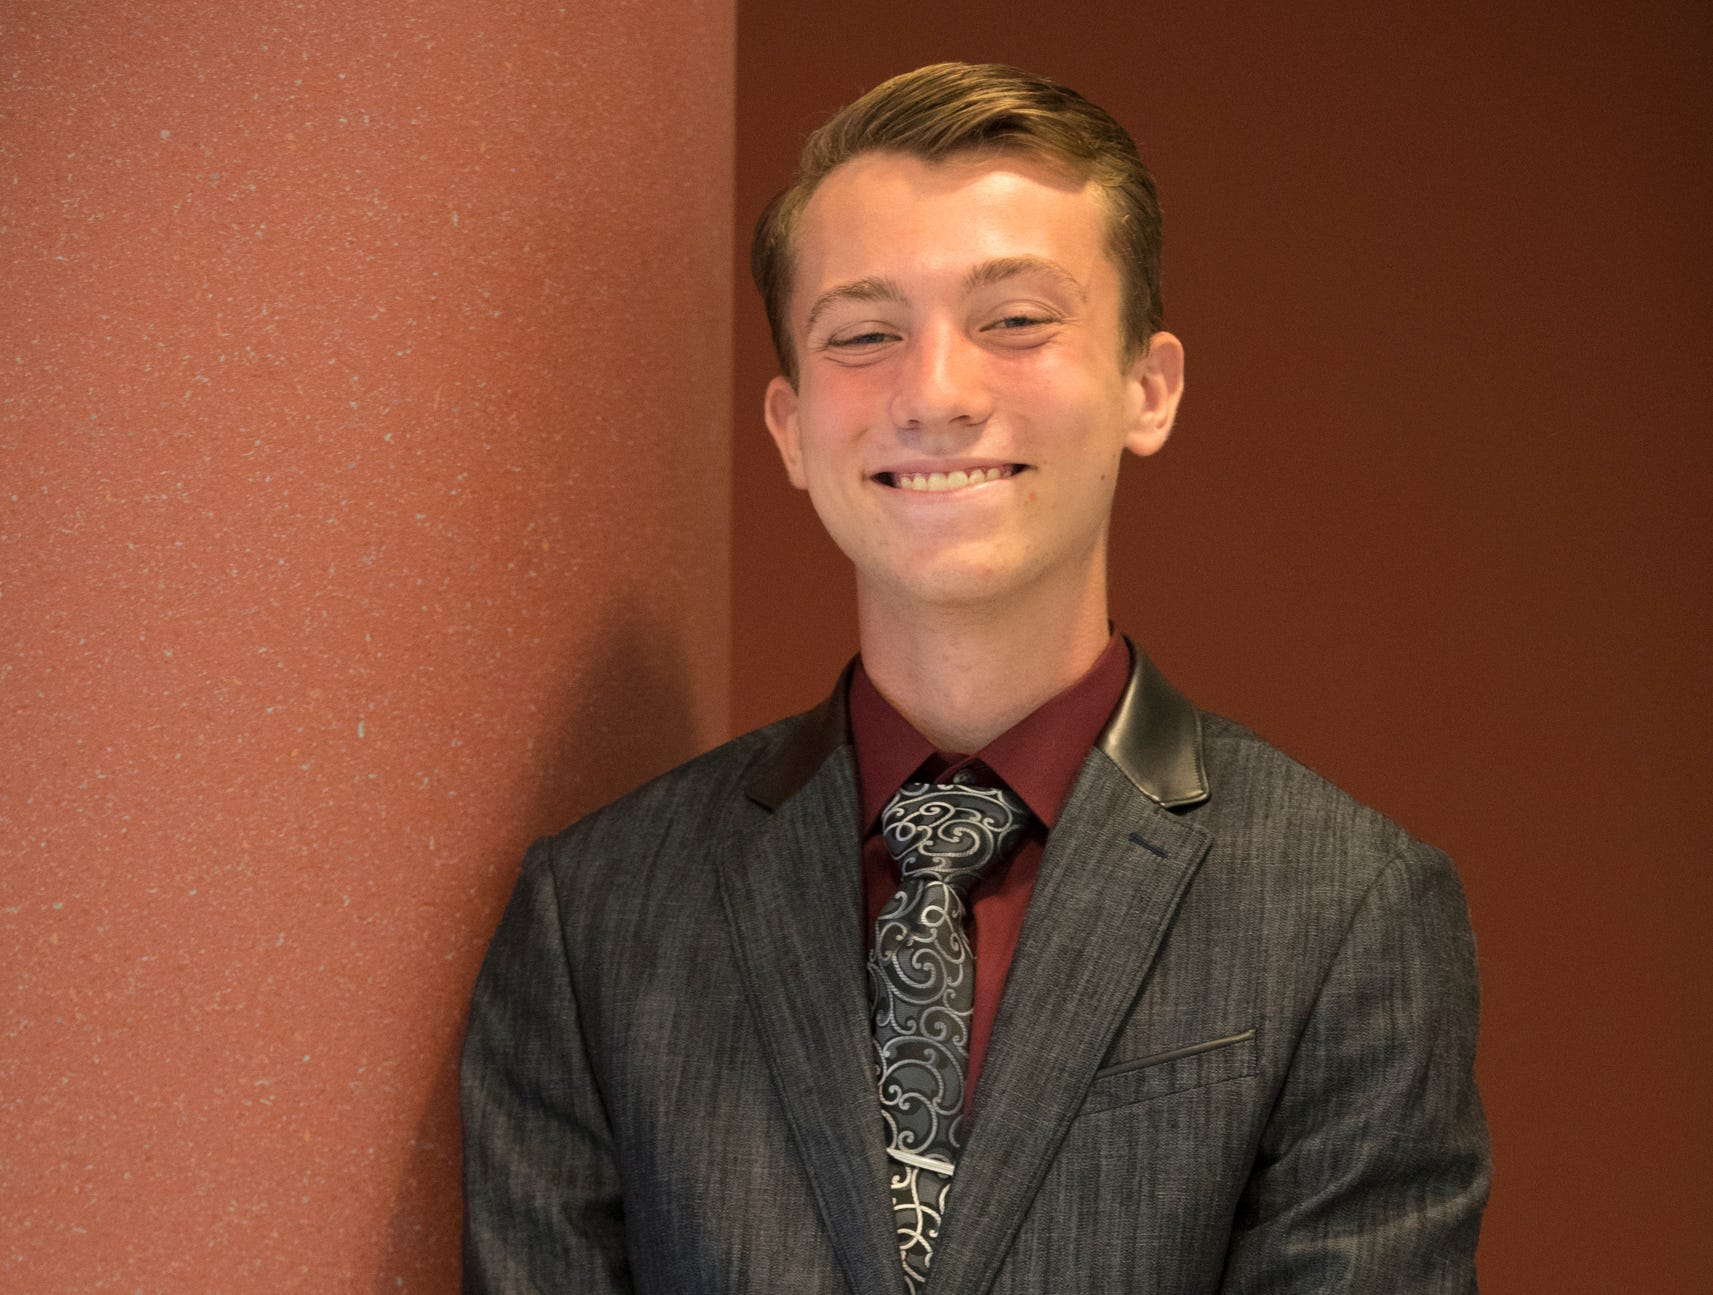 Spencer Immell, 16, Elite Eagles. Project: Photography – Controlling the Image, Nutrition – Yeast Breads